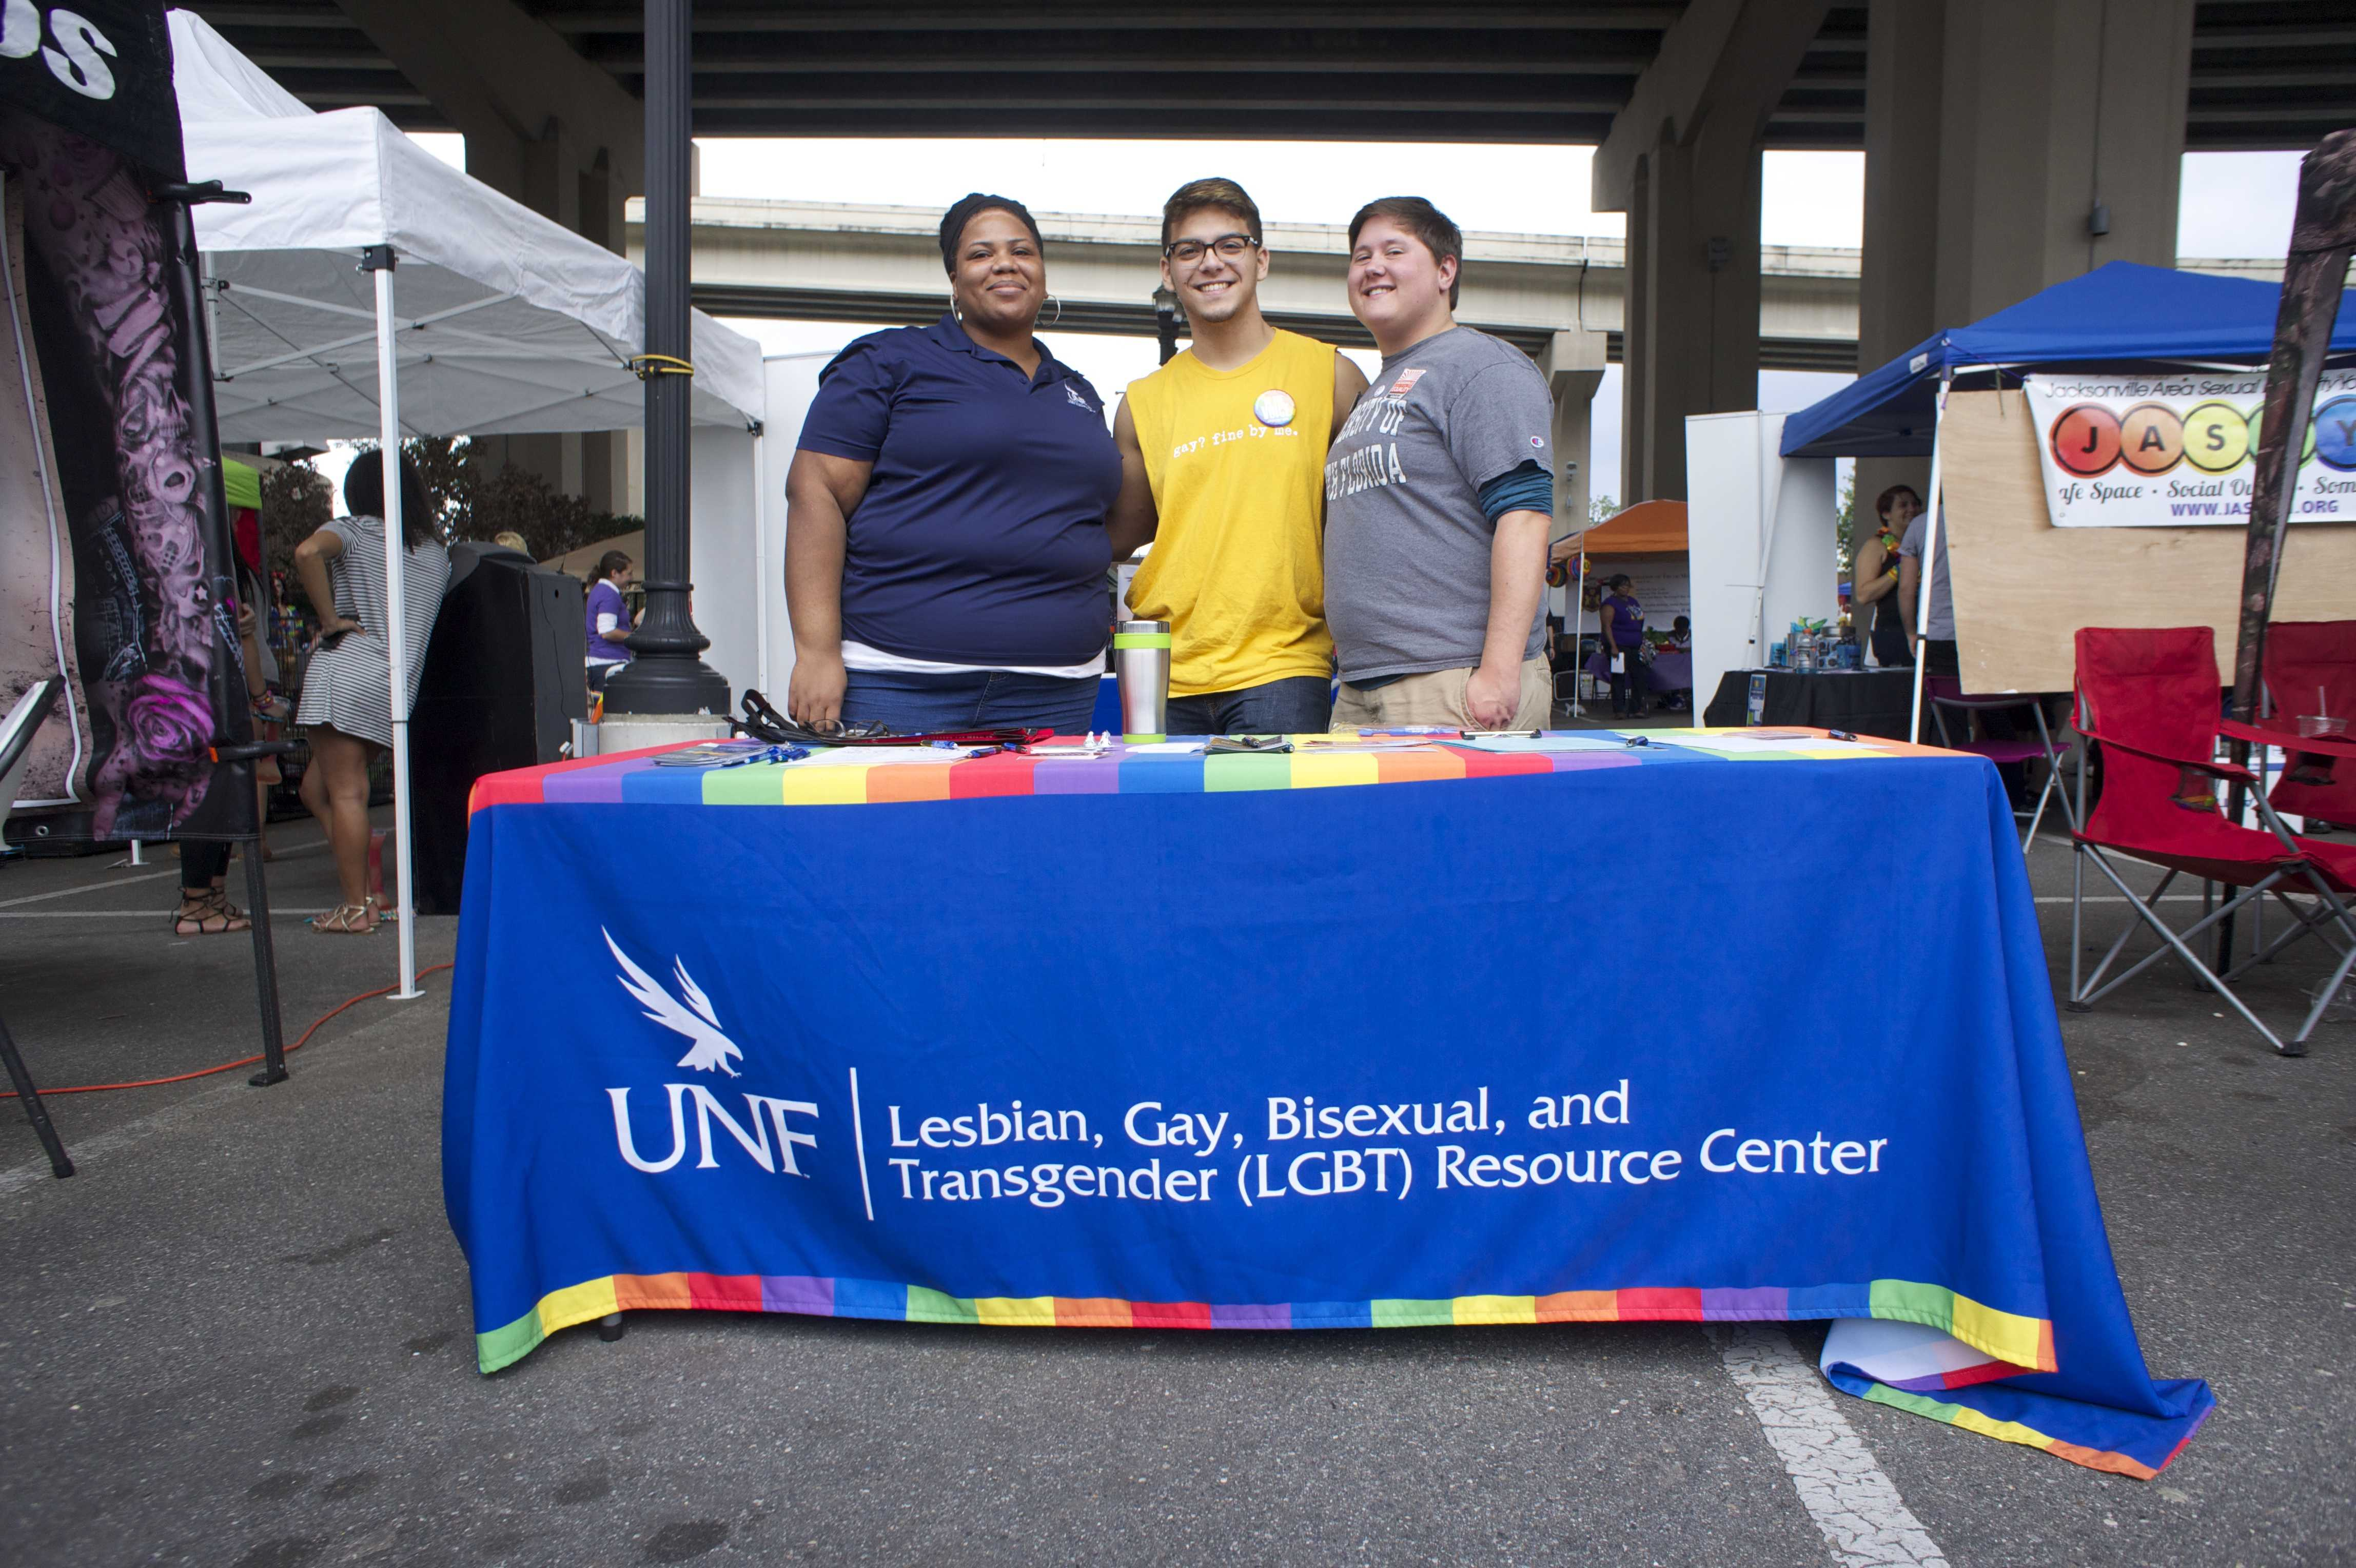 LGBT Center represents UNF at River City Pride Festival